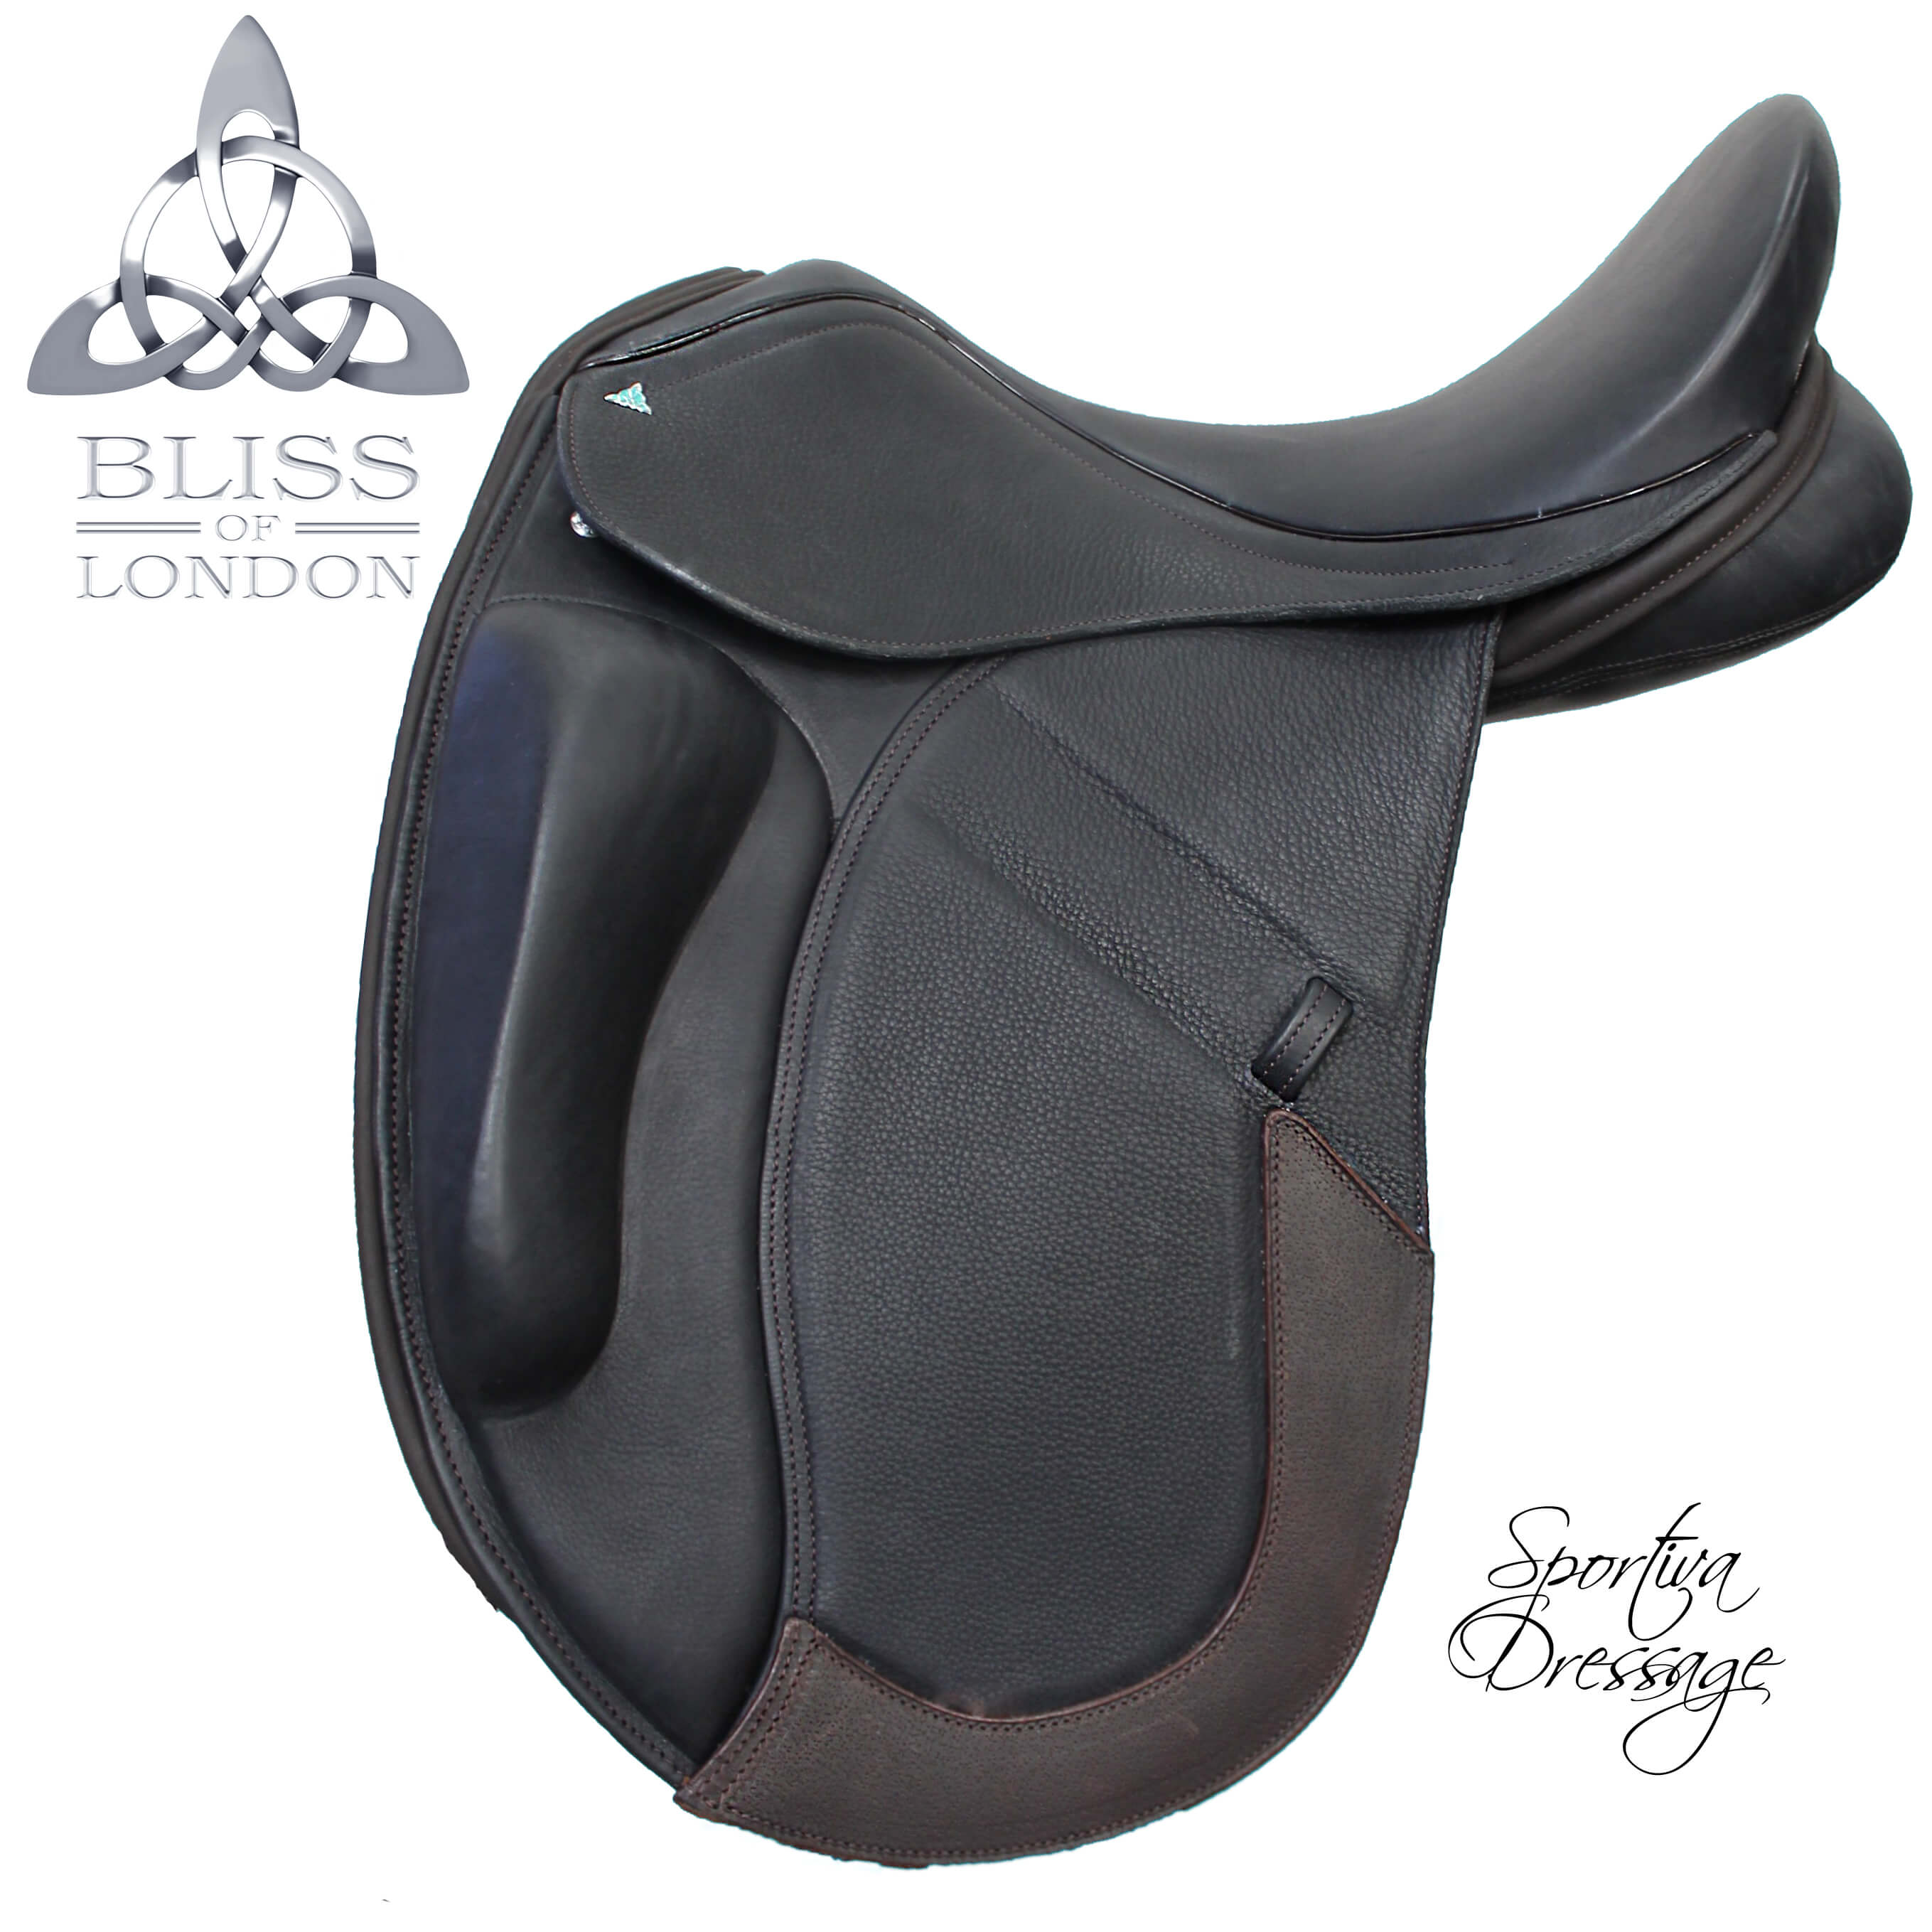 1AA Product page 1 - Sportiva Dressage Bliss Saddle Image Template